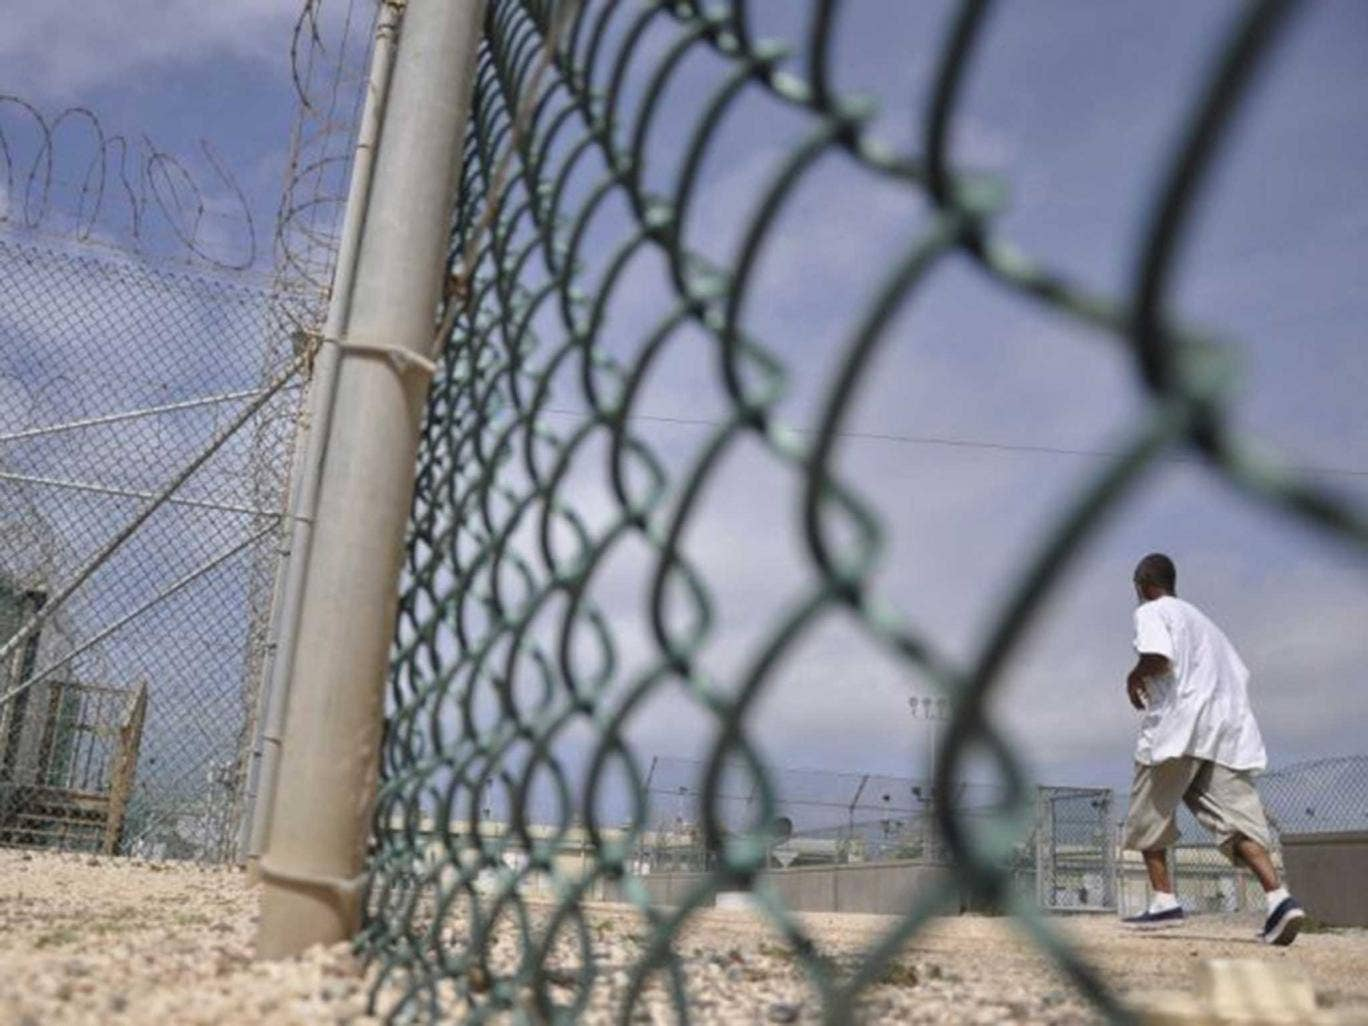 In detention: The US prison still holds 149 inmates accused of terrorism but not charged